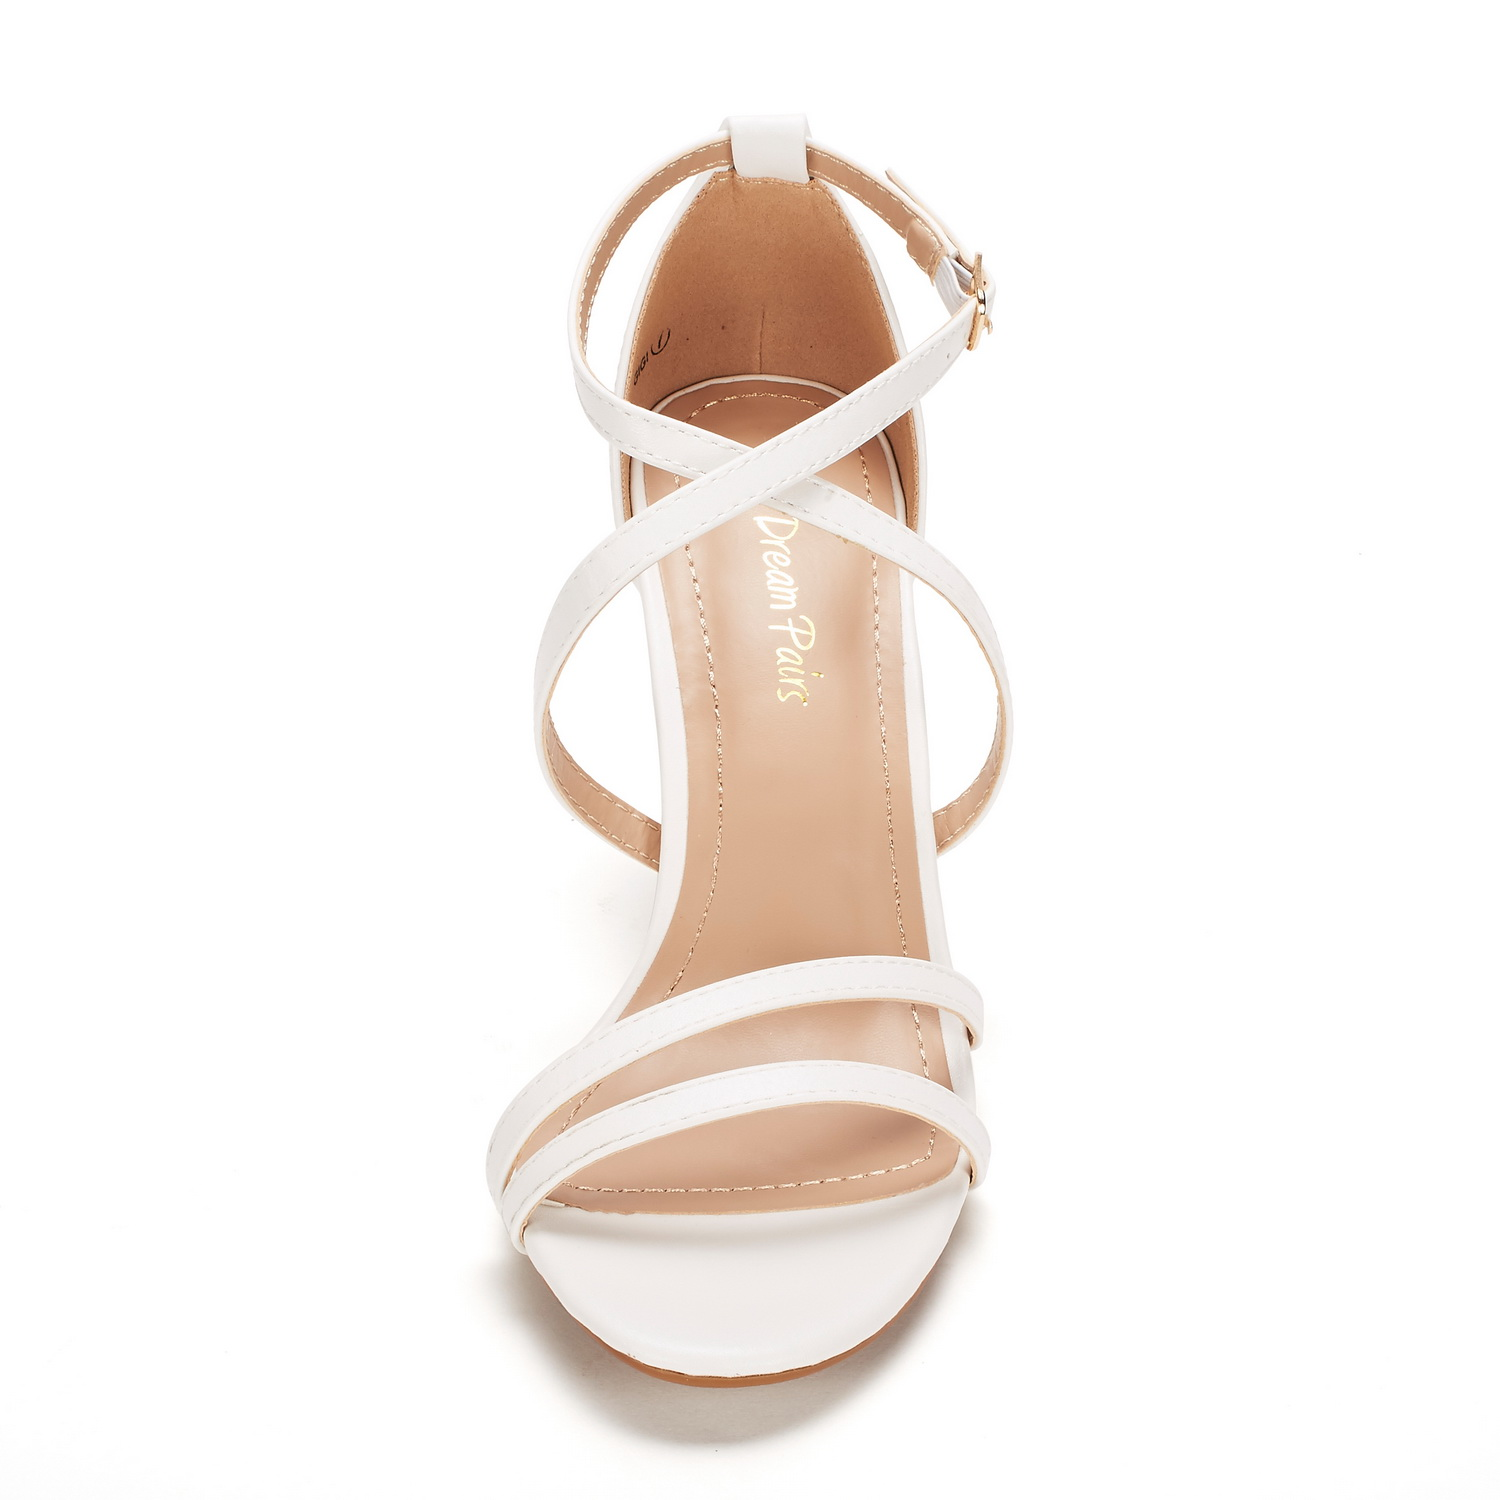 DREAM-PAIRS-Women-039-s-Ankle-Strap-High-Heel-Sandals-Dress-Shoes-Wedding-Party thumbnail 15